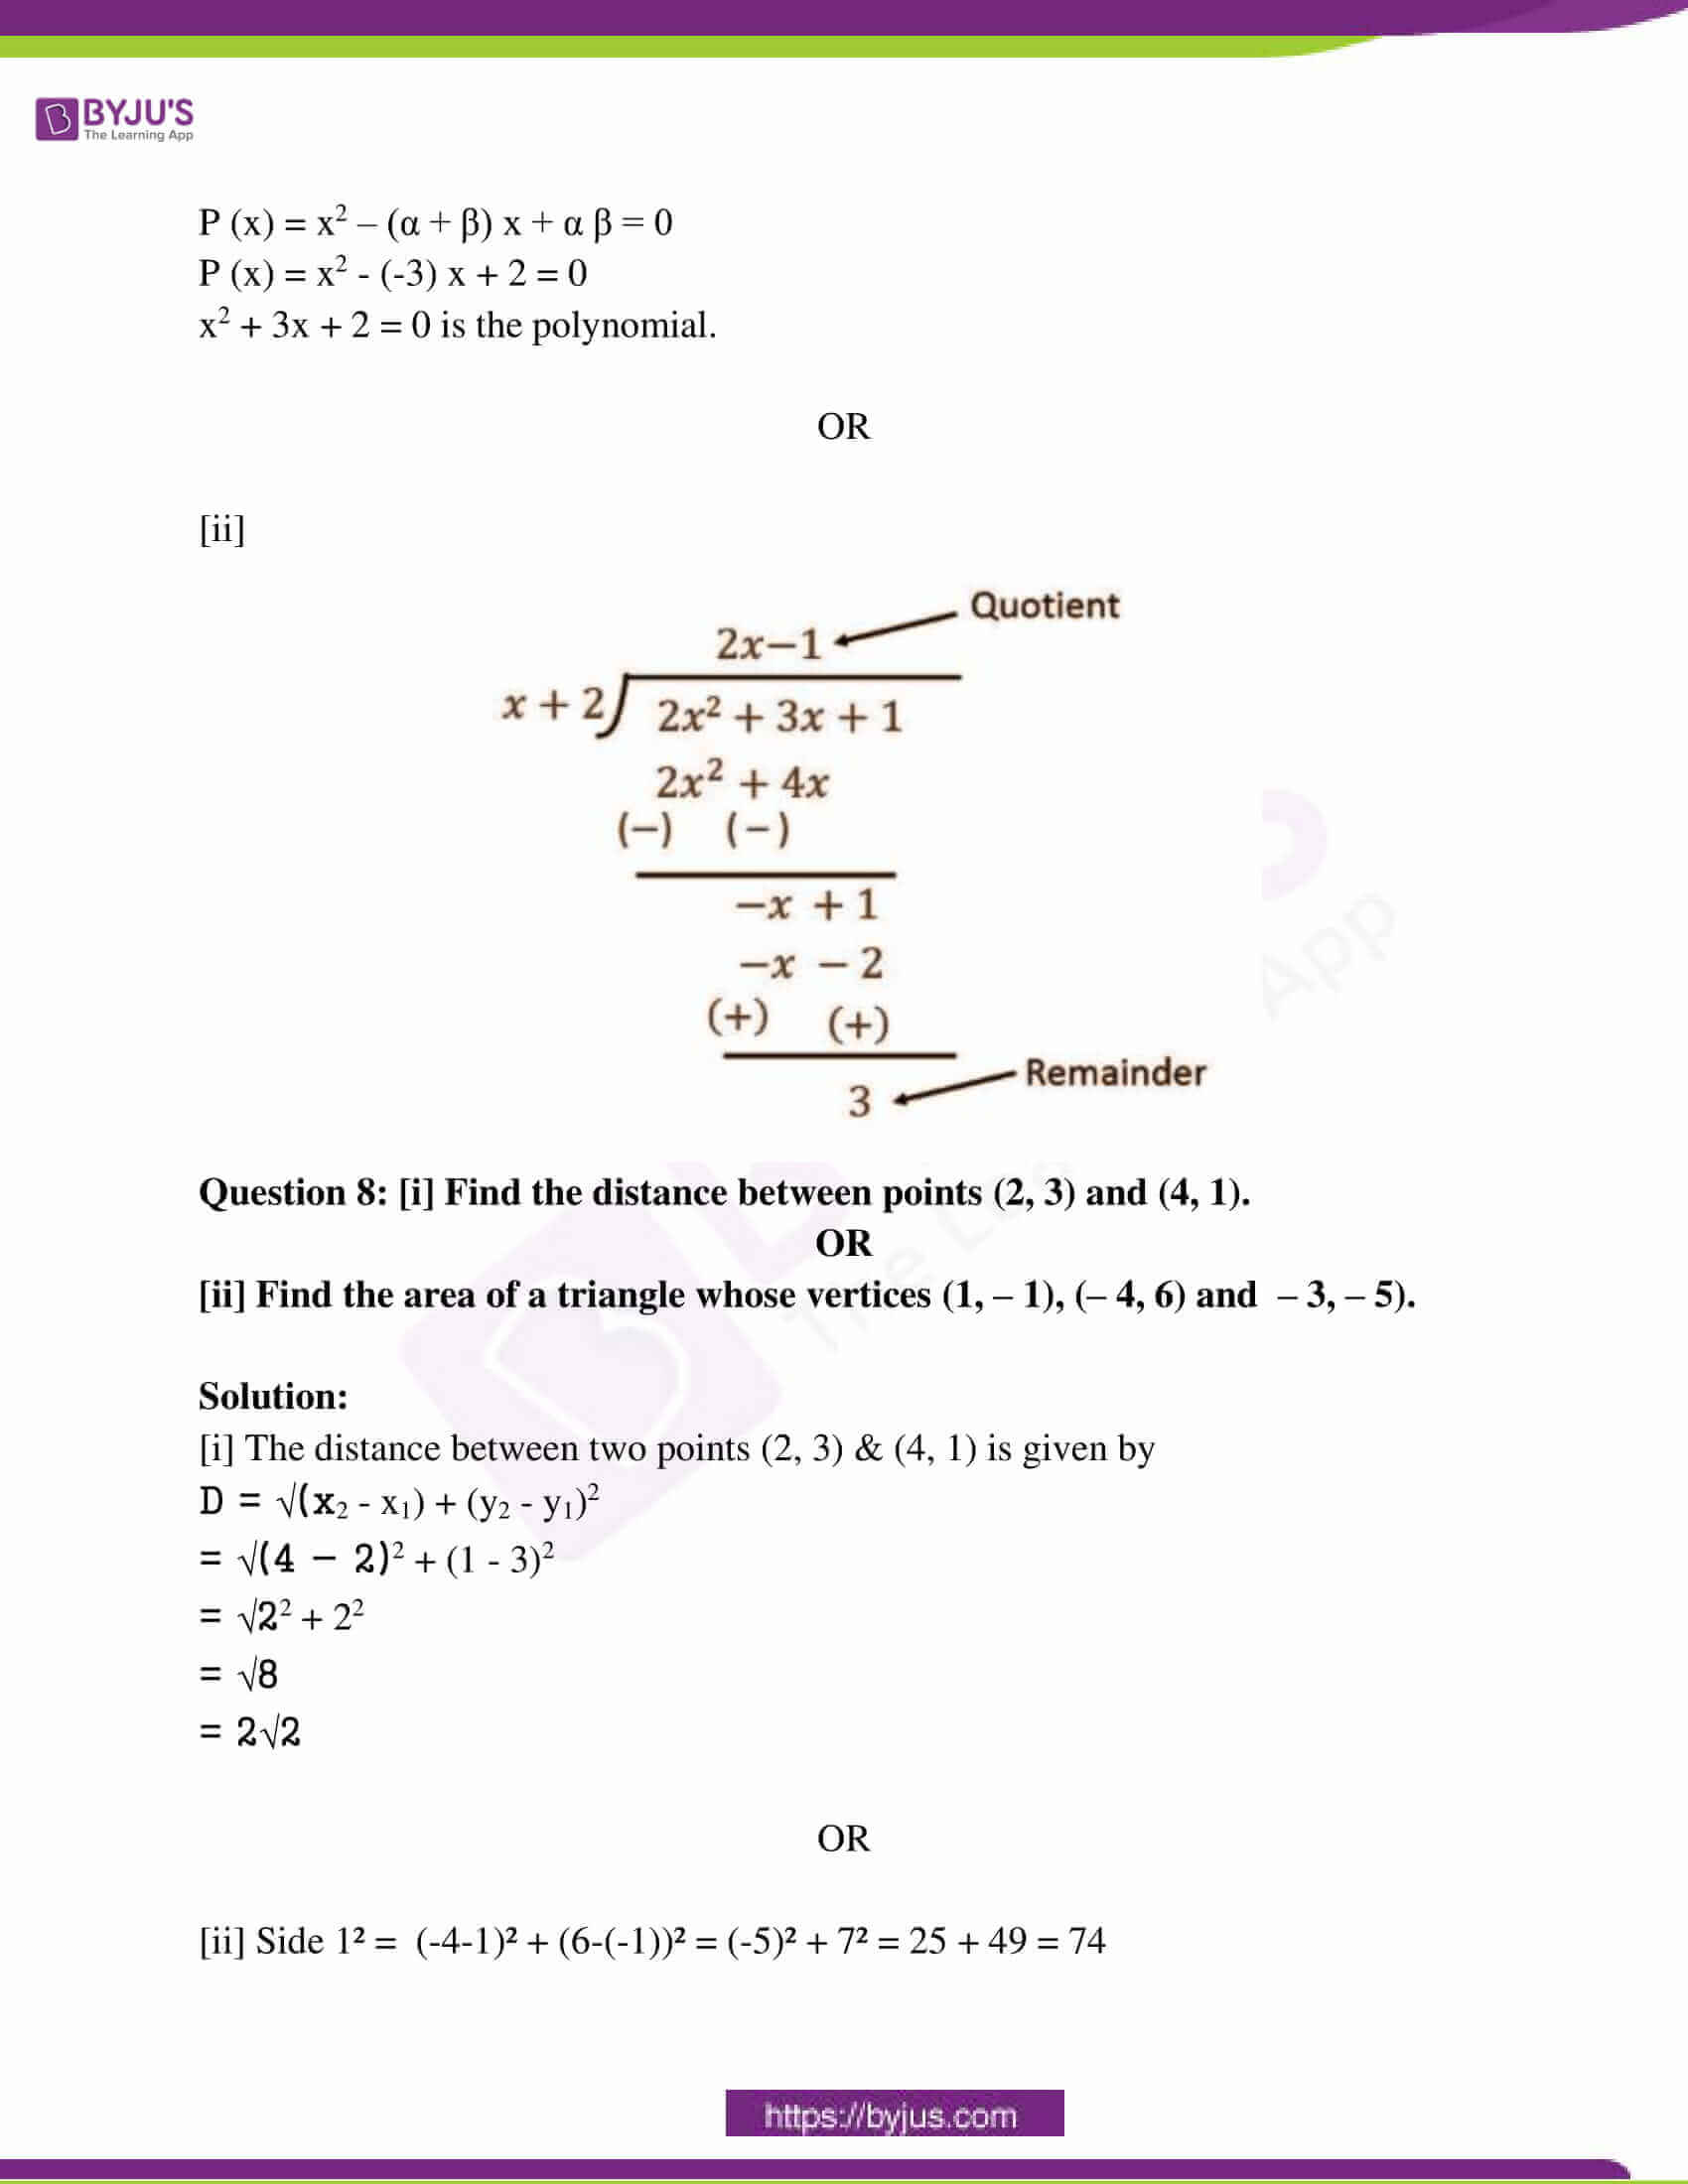 mp class 10 exam question paper with solutions march 2019 05